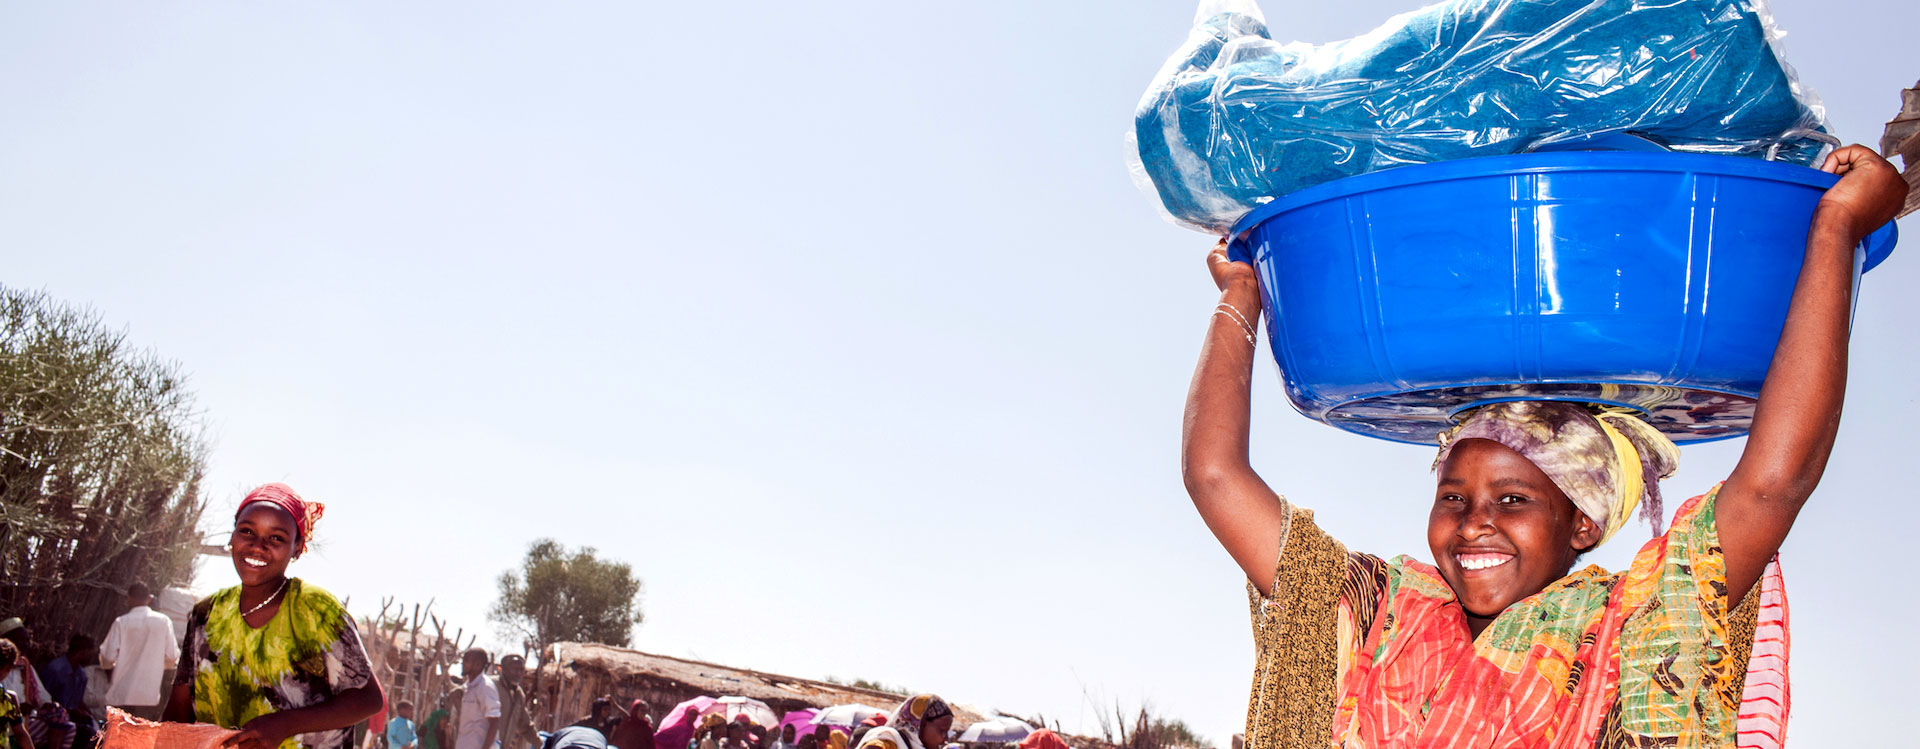 Emergency aid during drought in Borana, Ethiopia